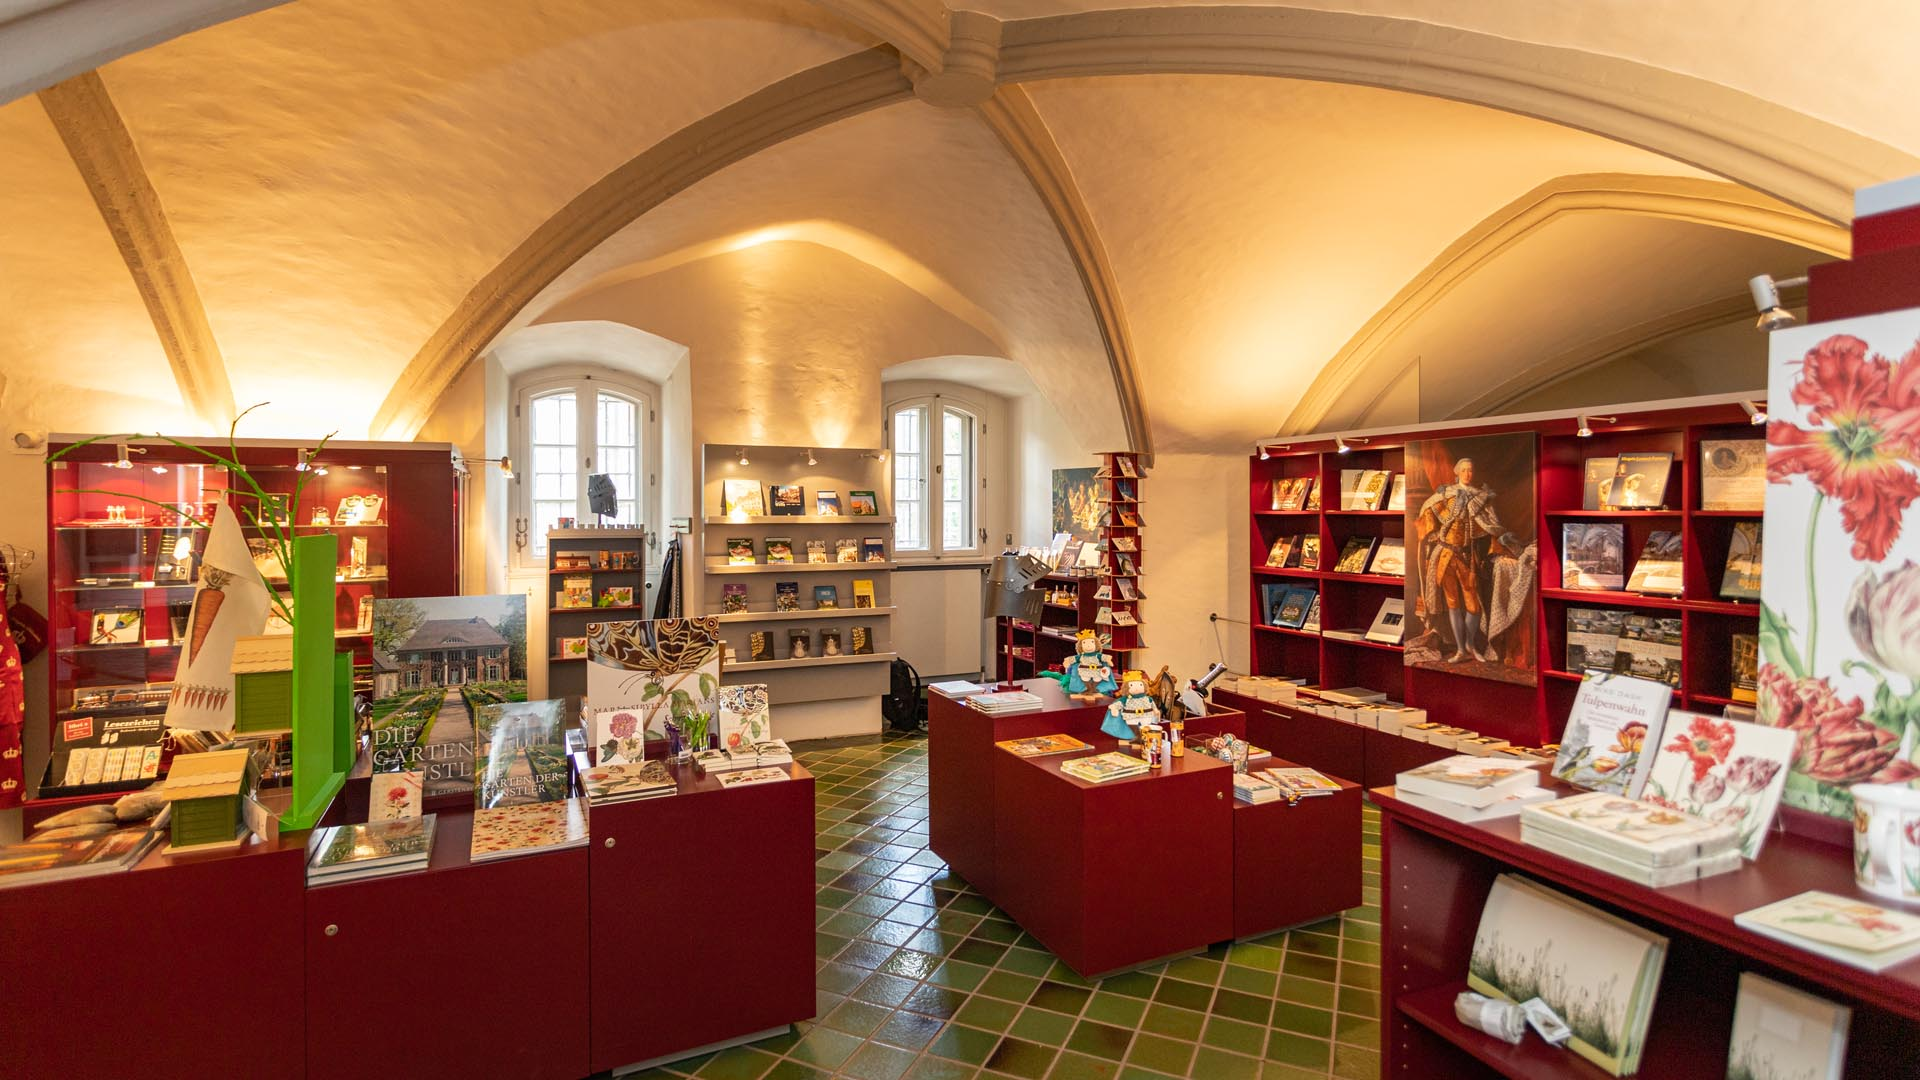 celle-residenzmuseum-museumsshop-3